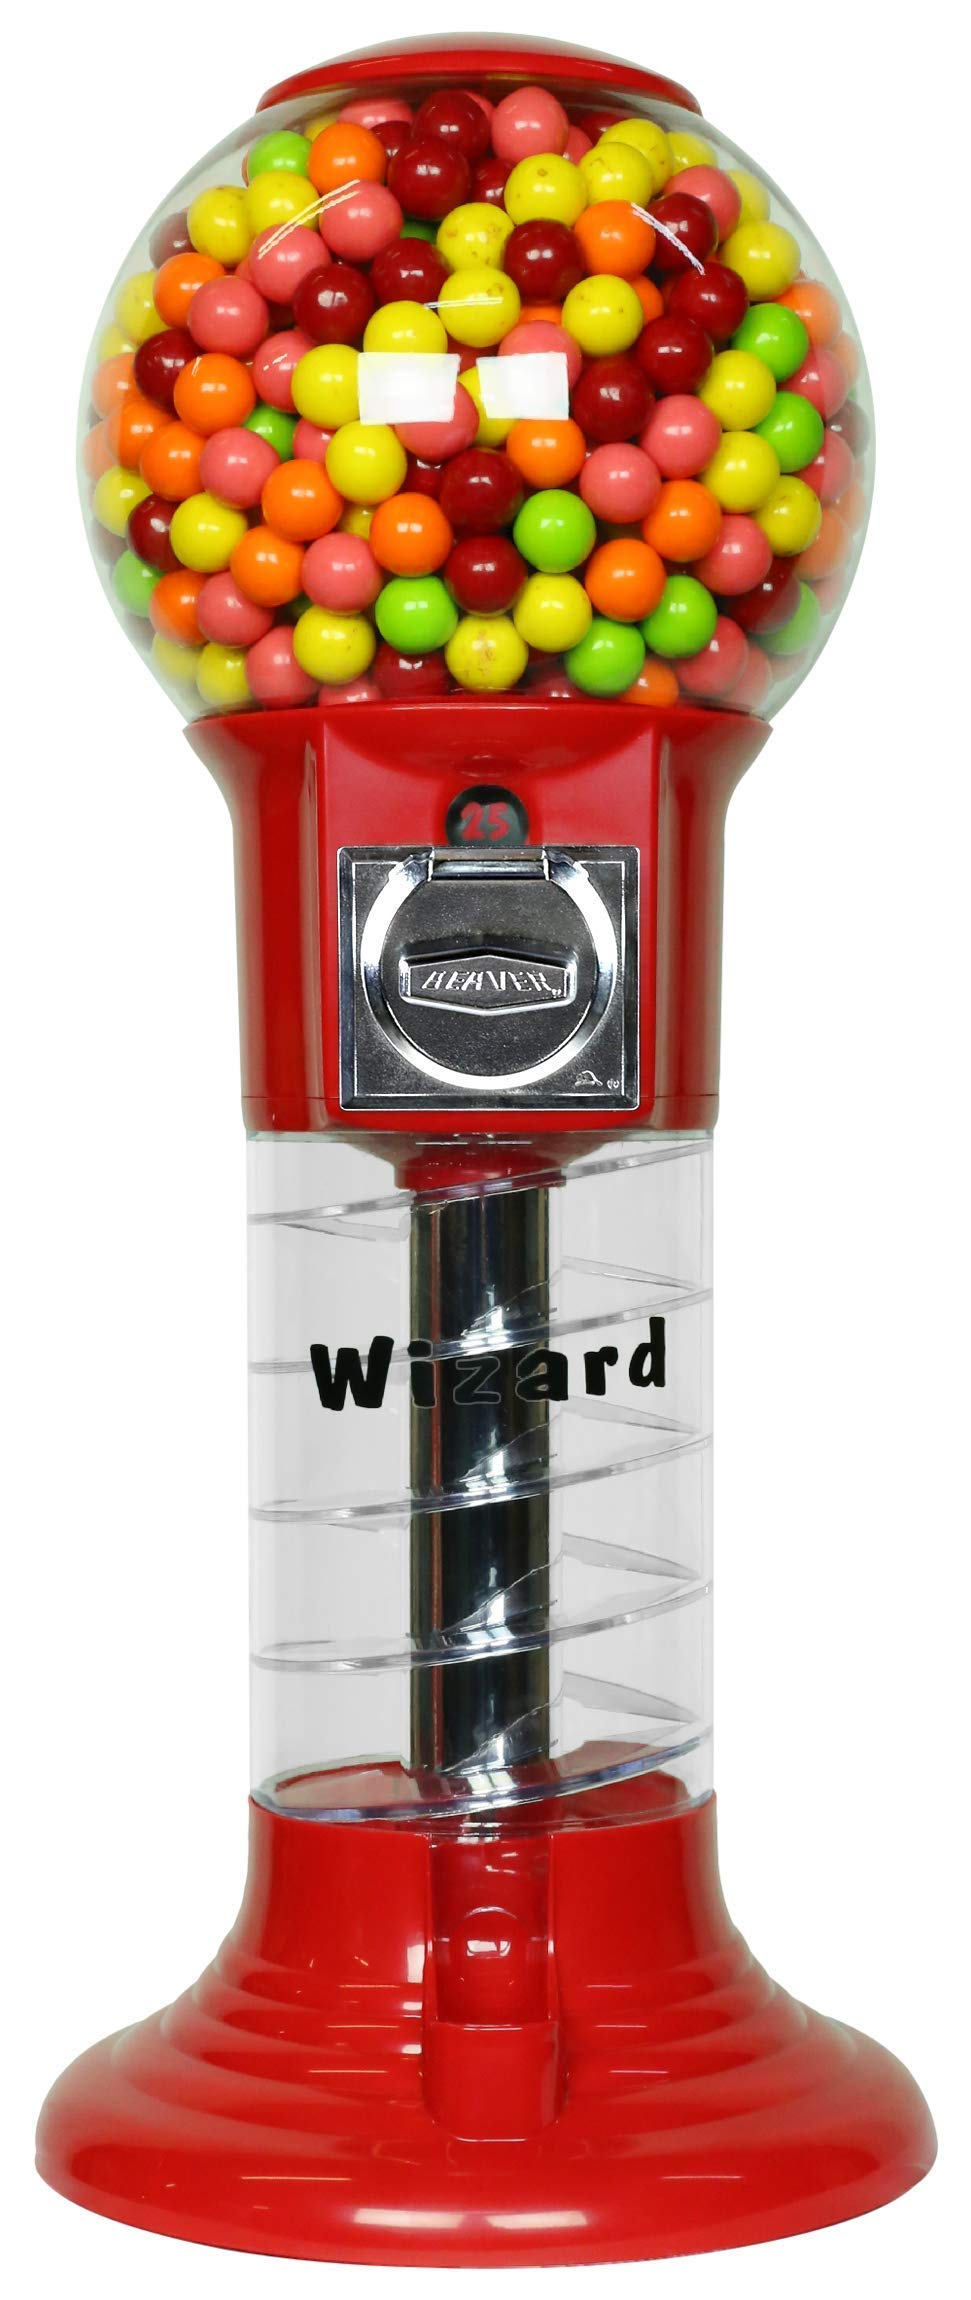 Gumball Machine 27'' Set Up for $0.25 Gumballs 1 inch Toys in Round Capsules 1'' Bouncy Balls 25 mm RED Spiral Vending Gum Machine Great Gumball Machines Gift for Kids Bubble Gum Machine Without Stand by Global Gumball